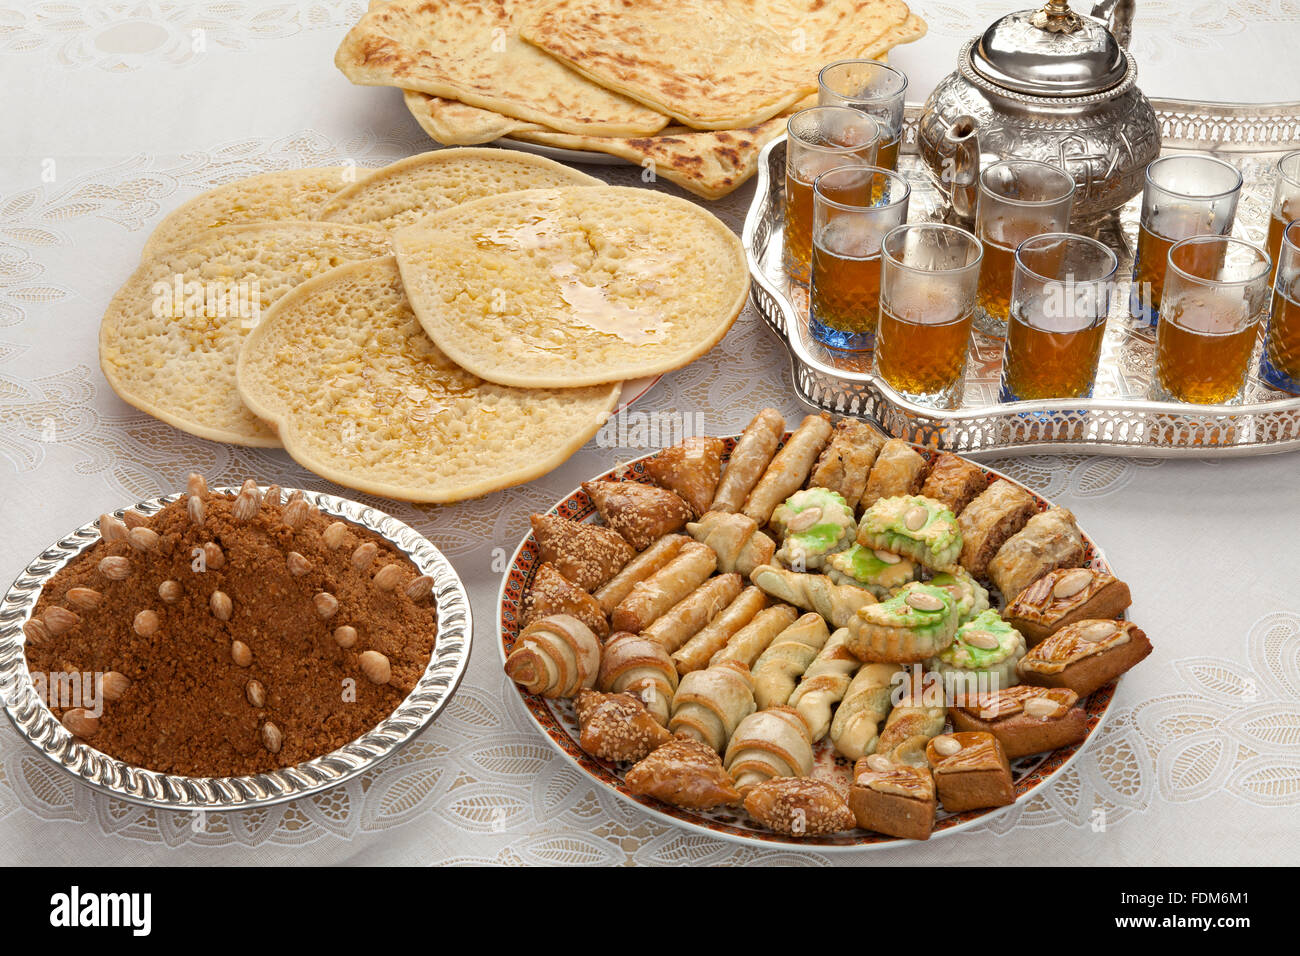 Most Inspiring Jordan Eid Al-Fitr Food - traditional-moroccan-teacookies-almond-sellou-and-pancakes-at-id-al-FDM6M1  Pictures_697997 .jpg